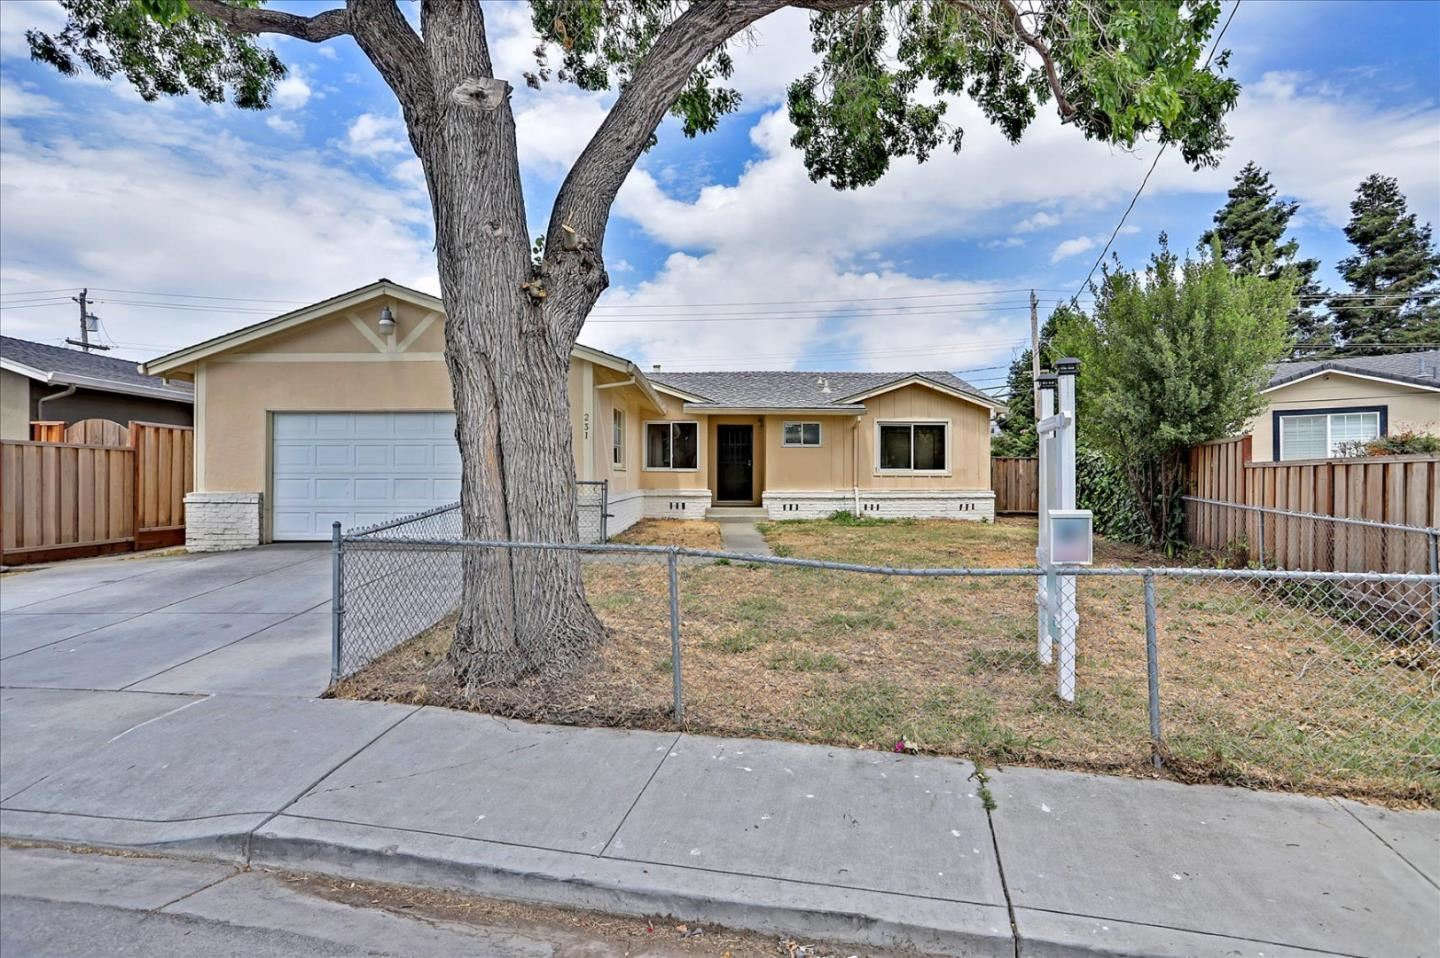 Photo for 231 Norwich Avenue, MILPITAS, CA 95035 (MLS # ML81854253)